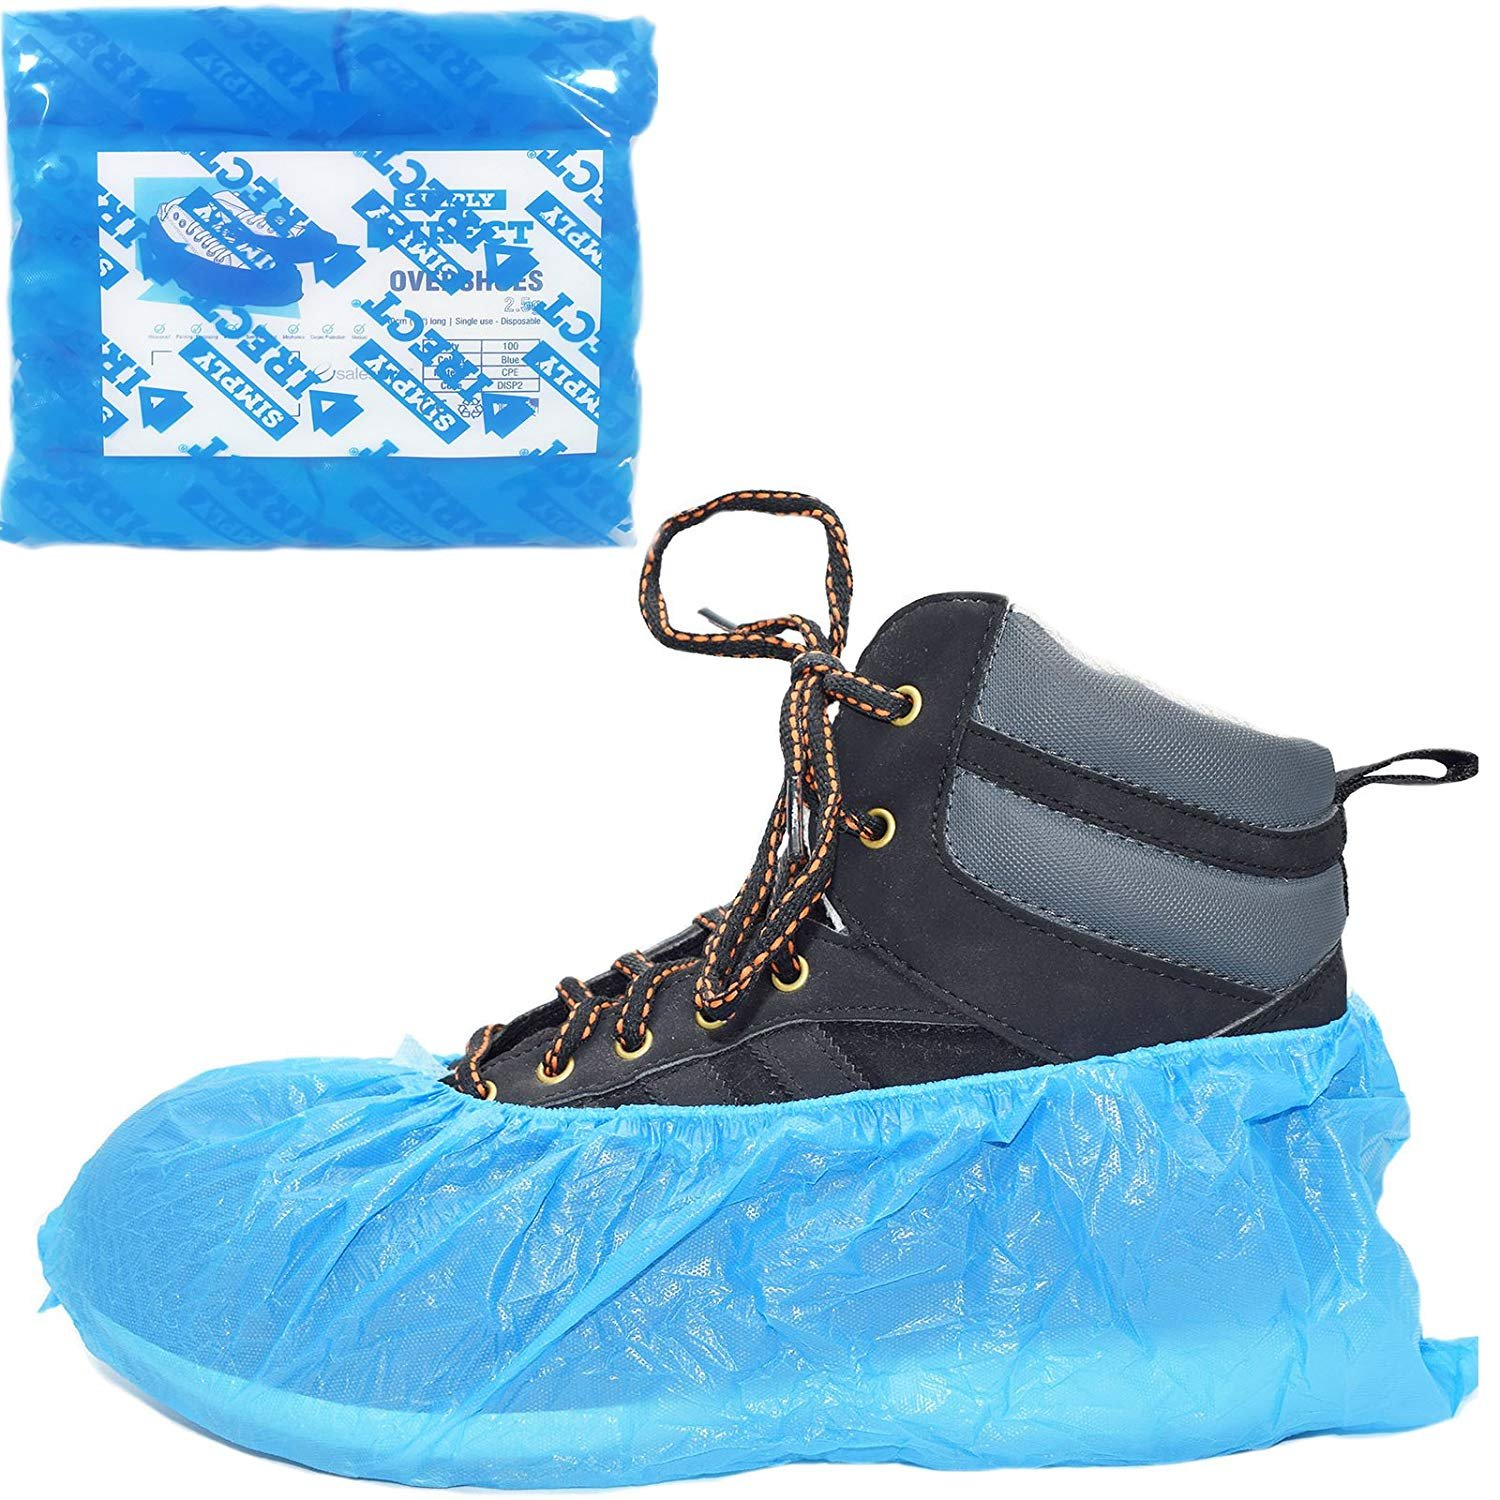 Practical 100pcs Disposable Plastic Shoes Covers Rainy Day Carpet Floor Protector Thick Cleaning Shoes Cover Blue Waterproof Overshoes#2 Customers First Shoe Accessories Shoes Covers